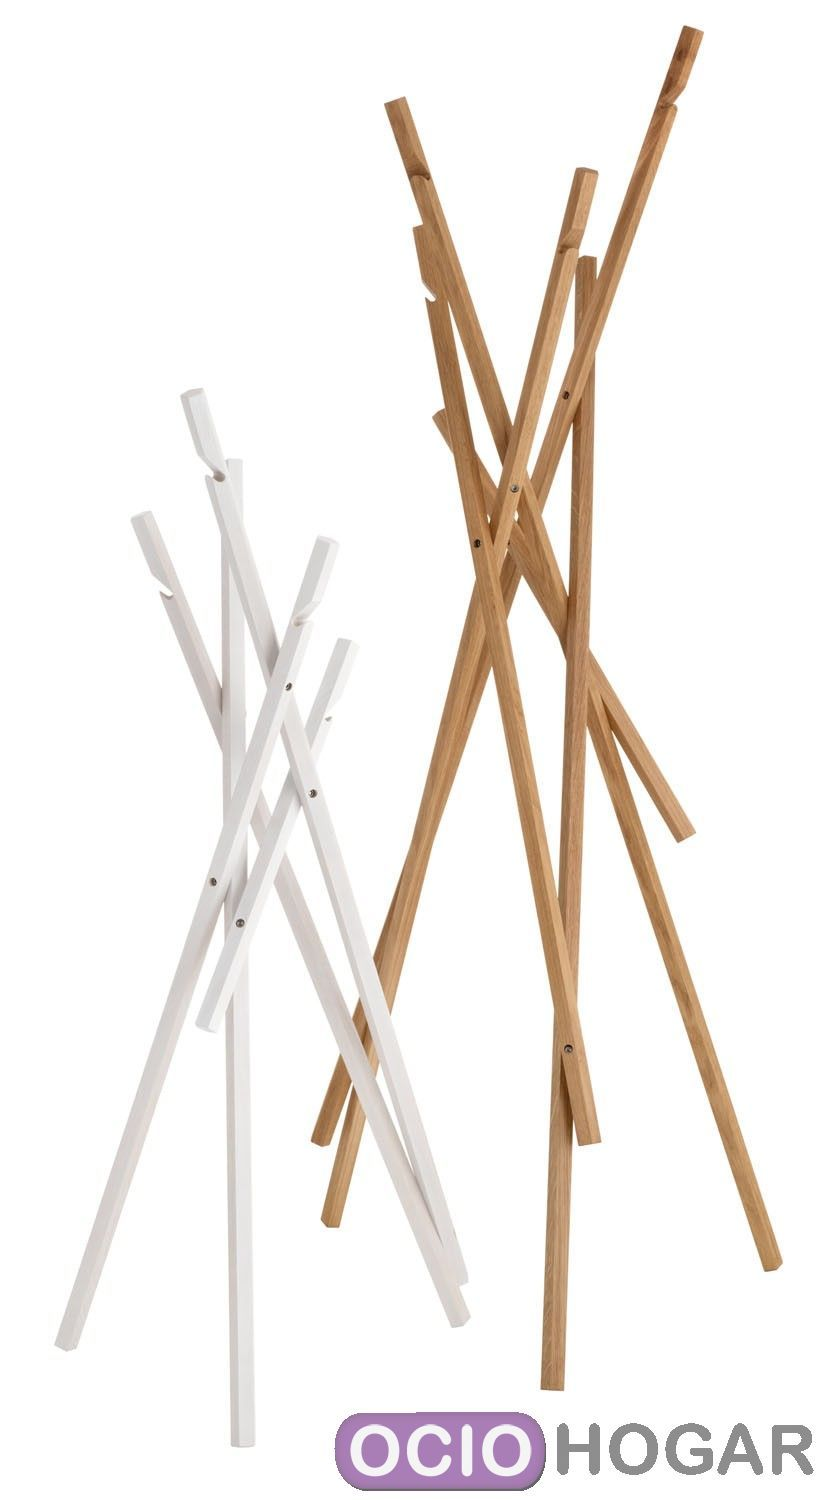 Perchero sticks de sch nbuch - Percheros de pie de diseno ...